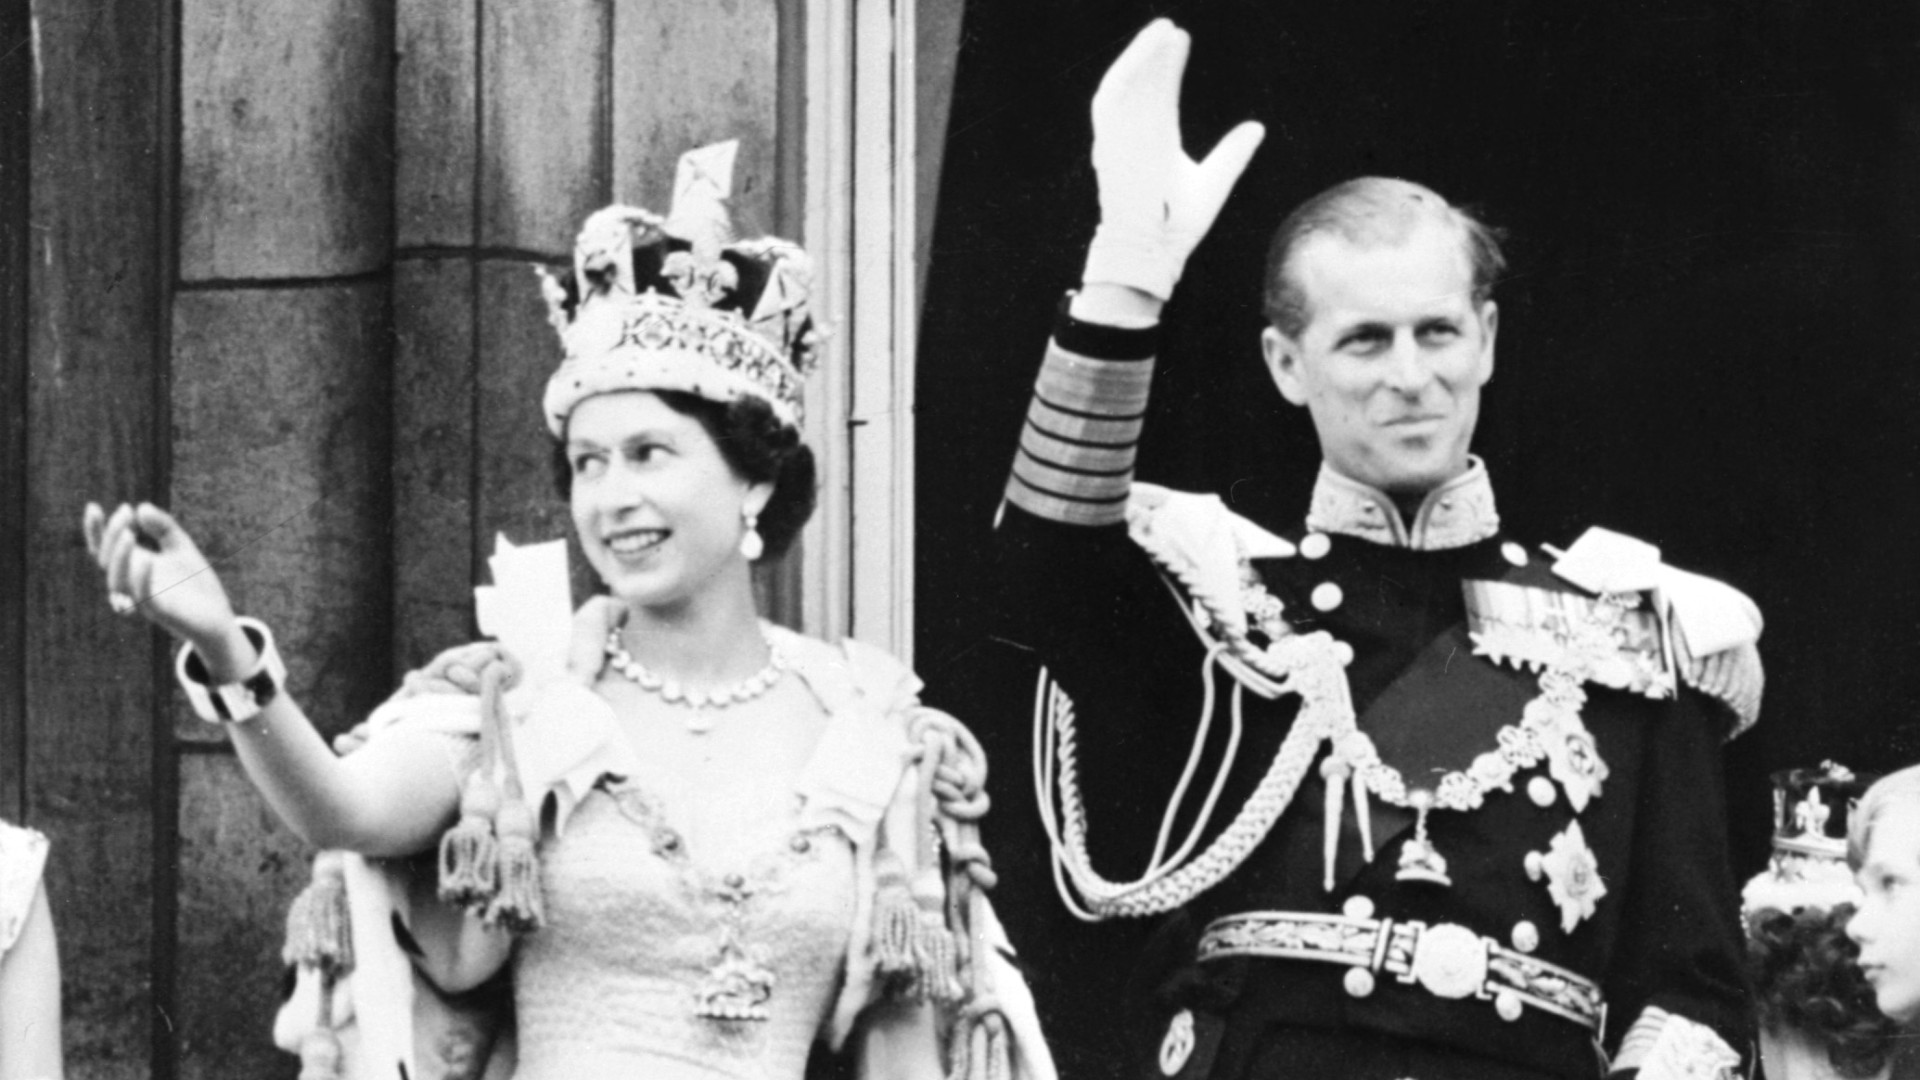 Britain's Queen Elizabeth II (L) accompanied by Britain's Prince Philip, Duke of Edinburgh (R) waves to the crowd, June 2, 1953 after being crowned at Westminter Abbey in London. (AFP via Getty Images)